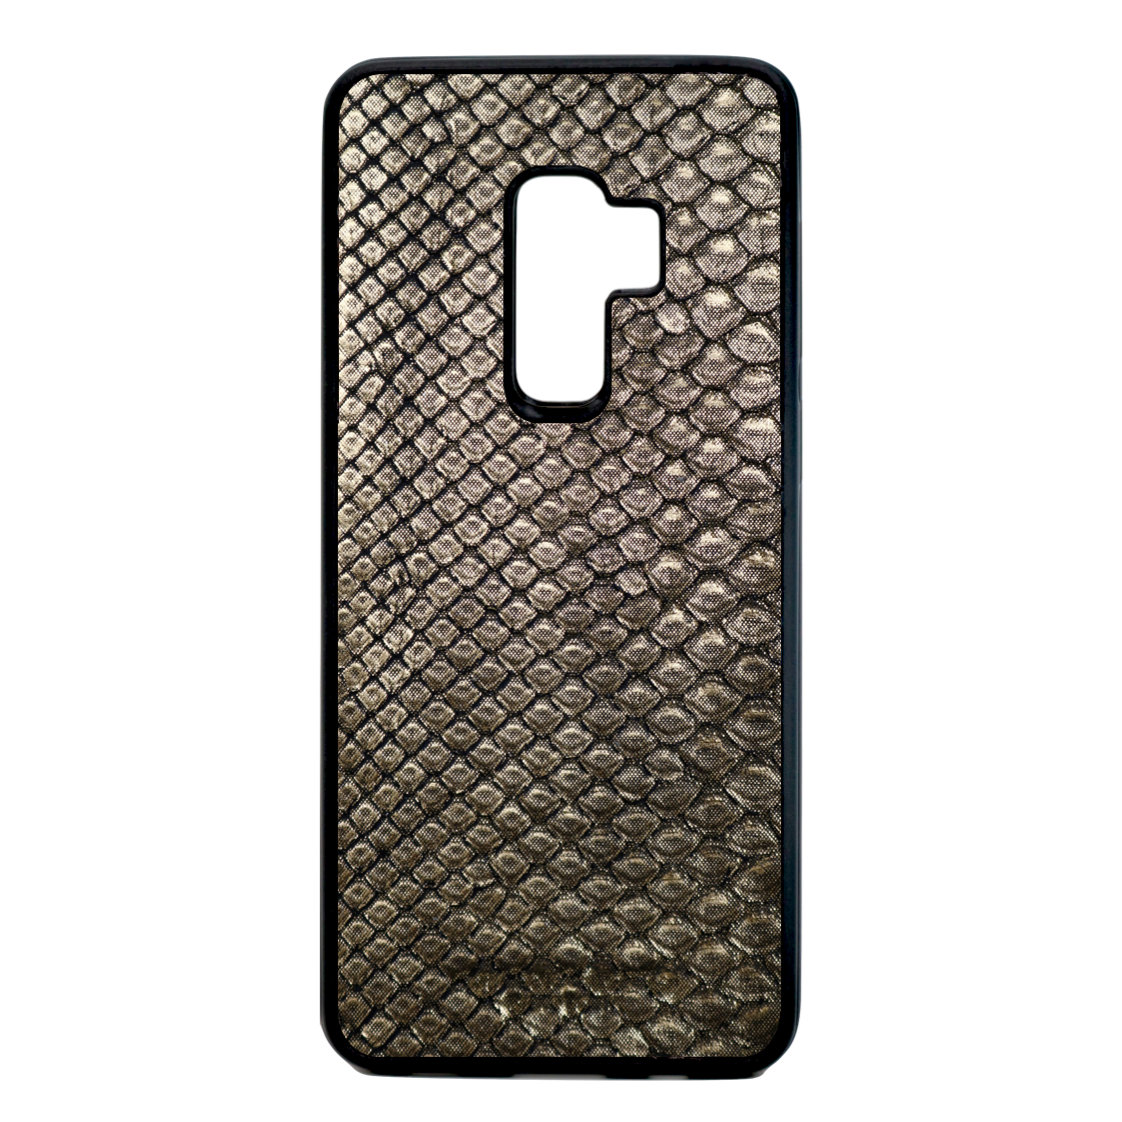 reputable site c2cab 3d023 Limited Edition Gold Python Snakeskin Galaxy S9 Plus Case